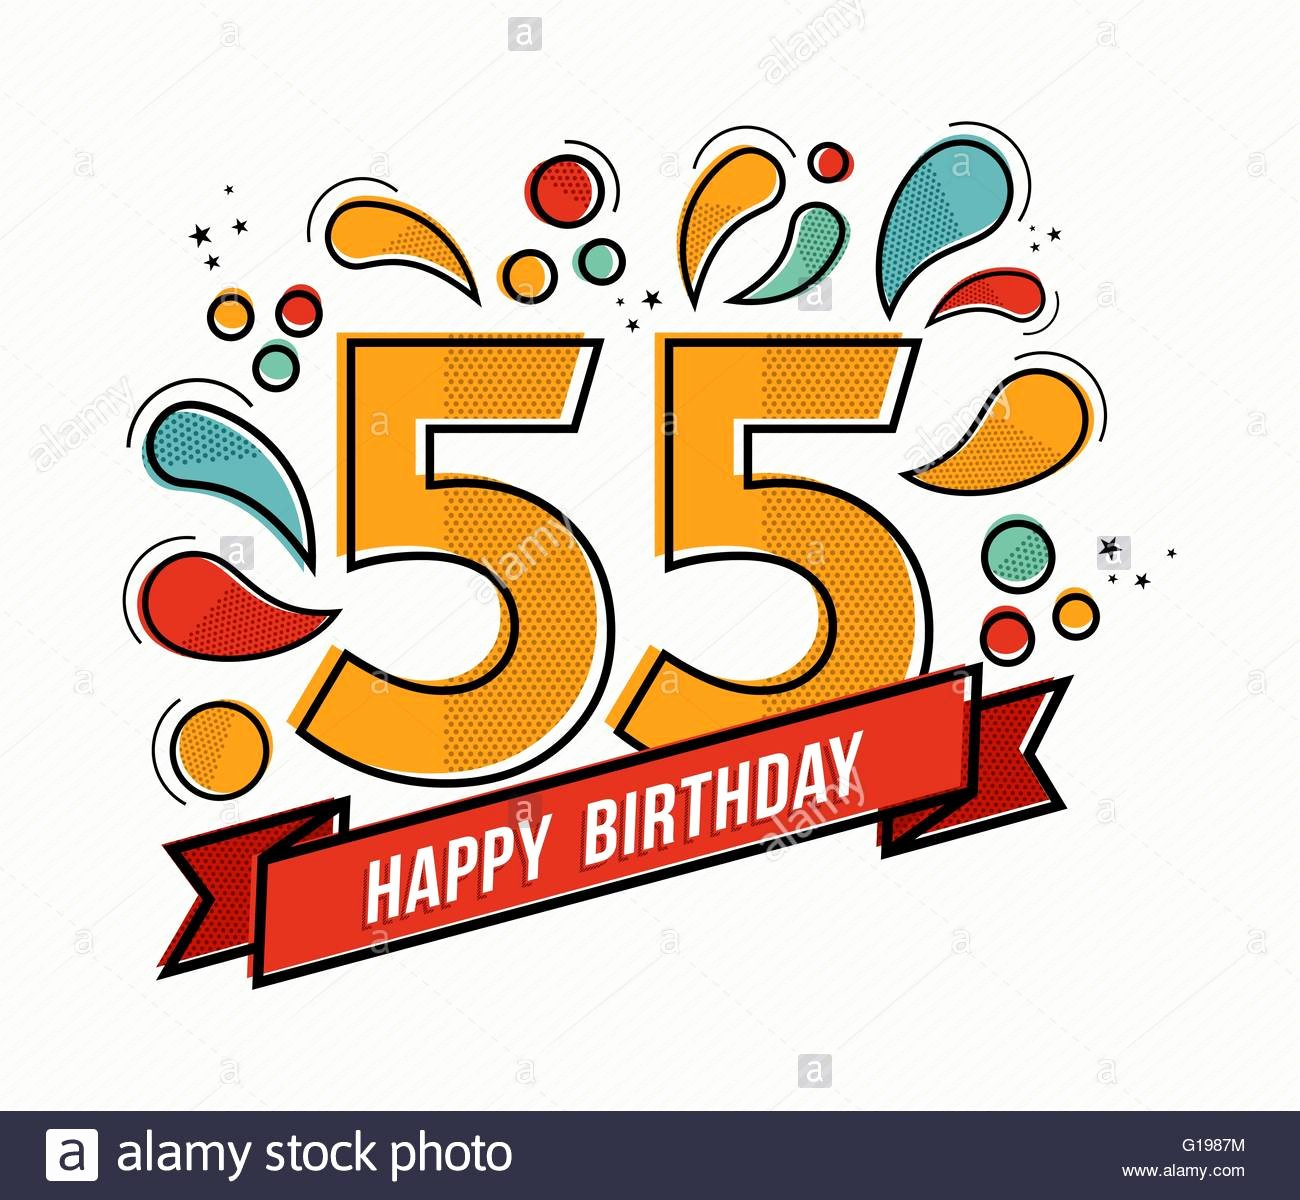 Happy 55th Birthday Images Elegant Happy Birthday Number 55 Greeting Card for Fifty Five